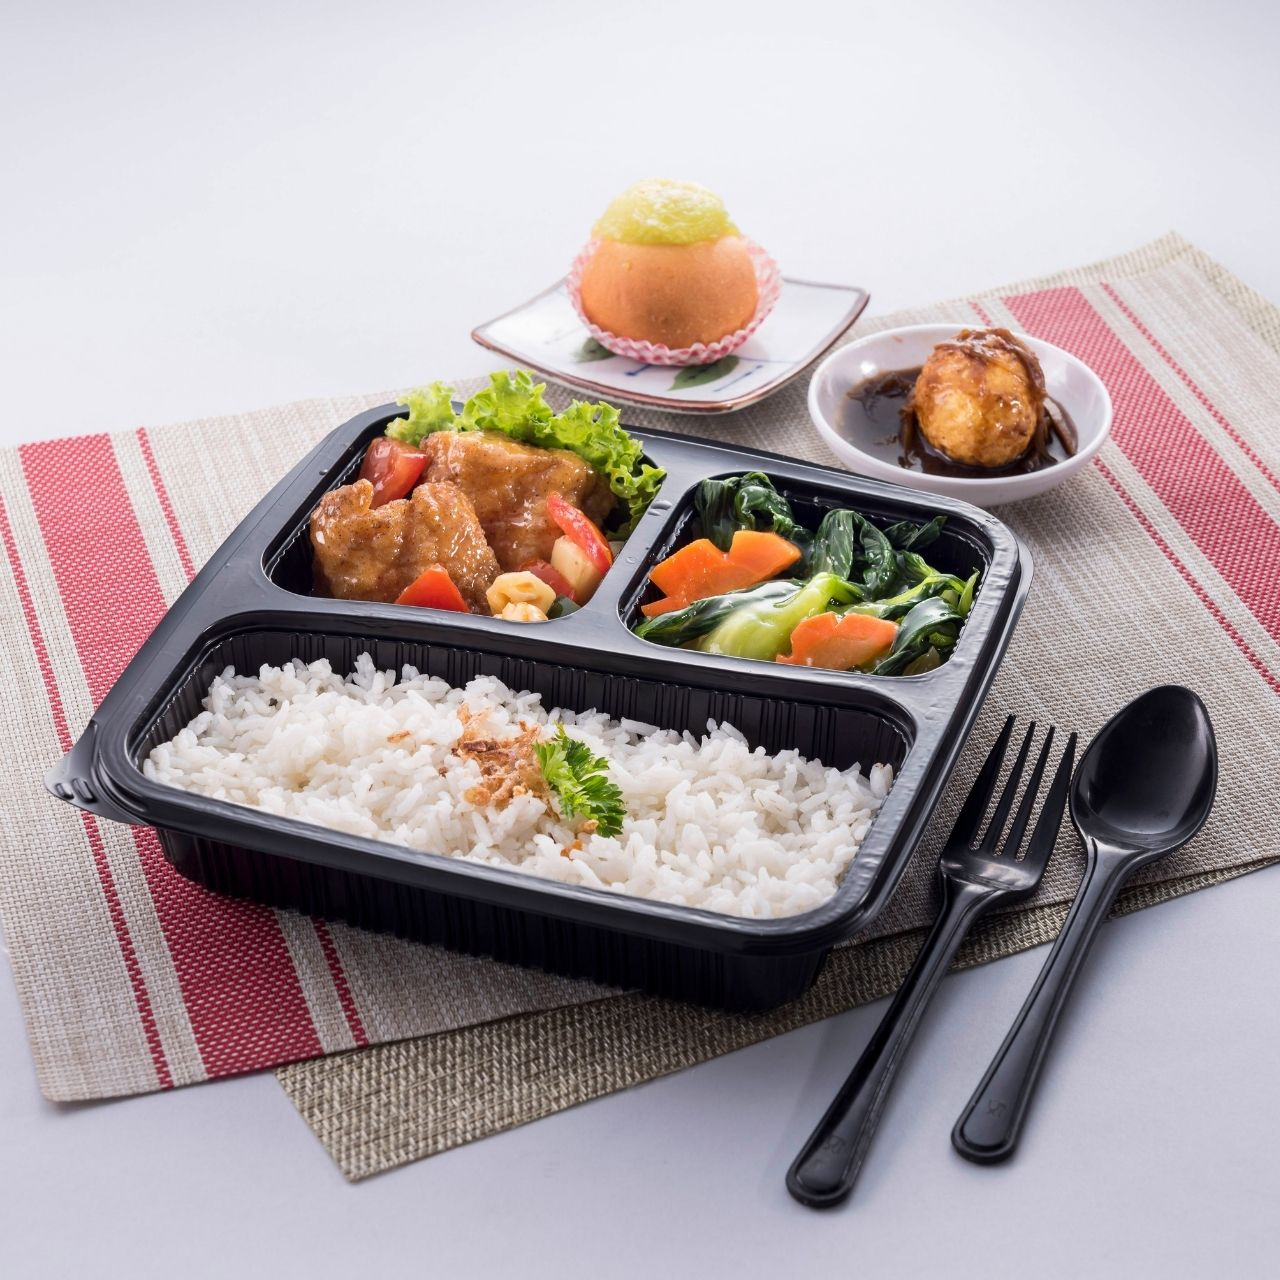 runningmen catering bento box sweet and sour fish with steam rice